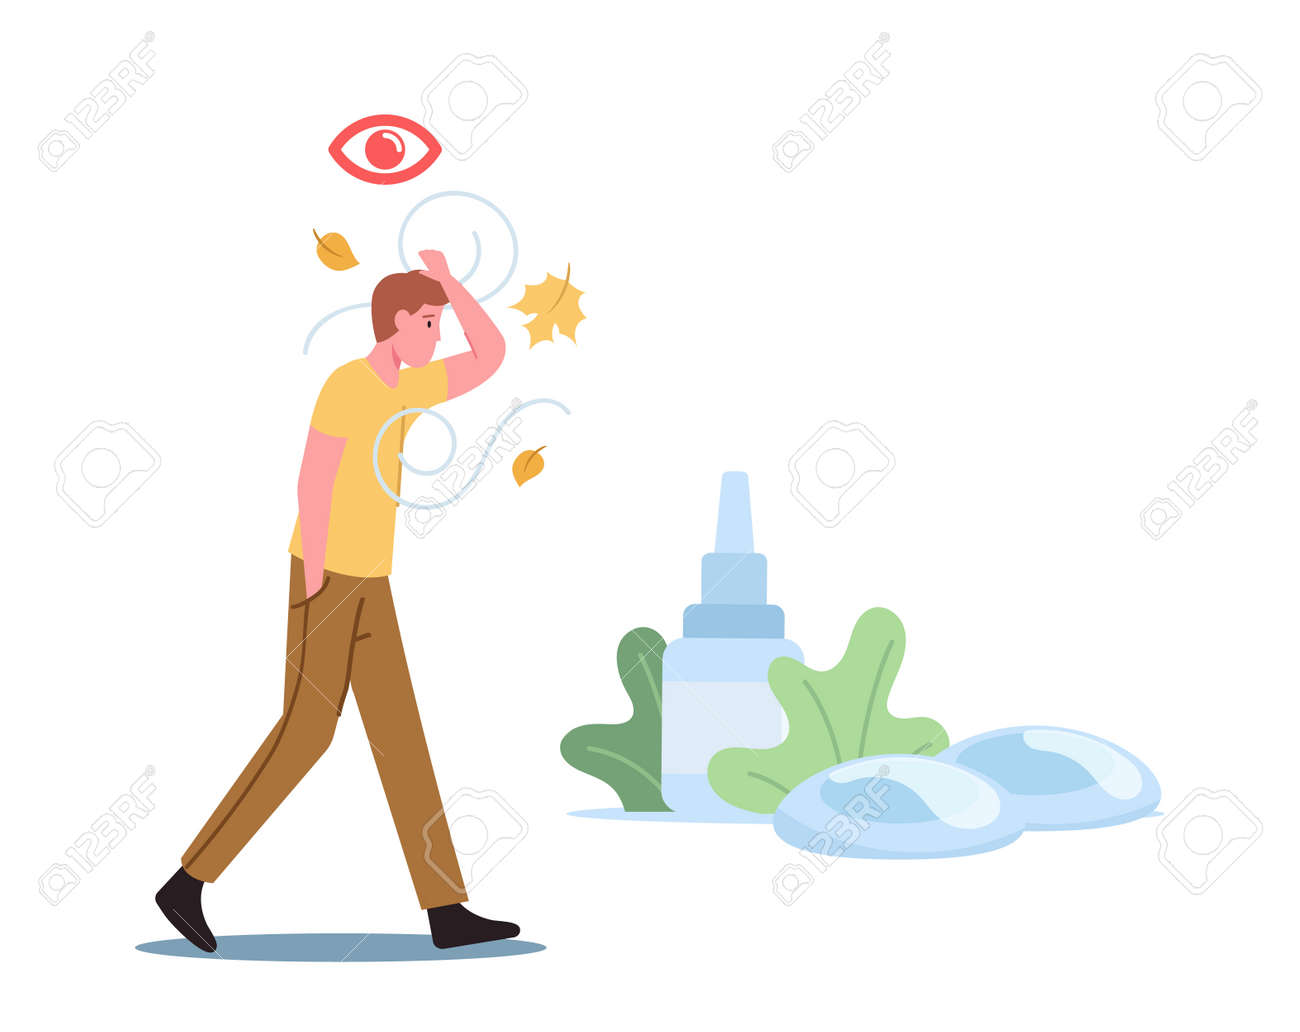 DES Medical and Pharmaceutical Concept. Male Character Walk Outdoor Suffering of Dry Eyes Syndrome and Conjunctivitis - 171875862